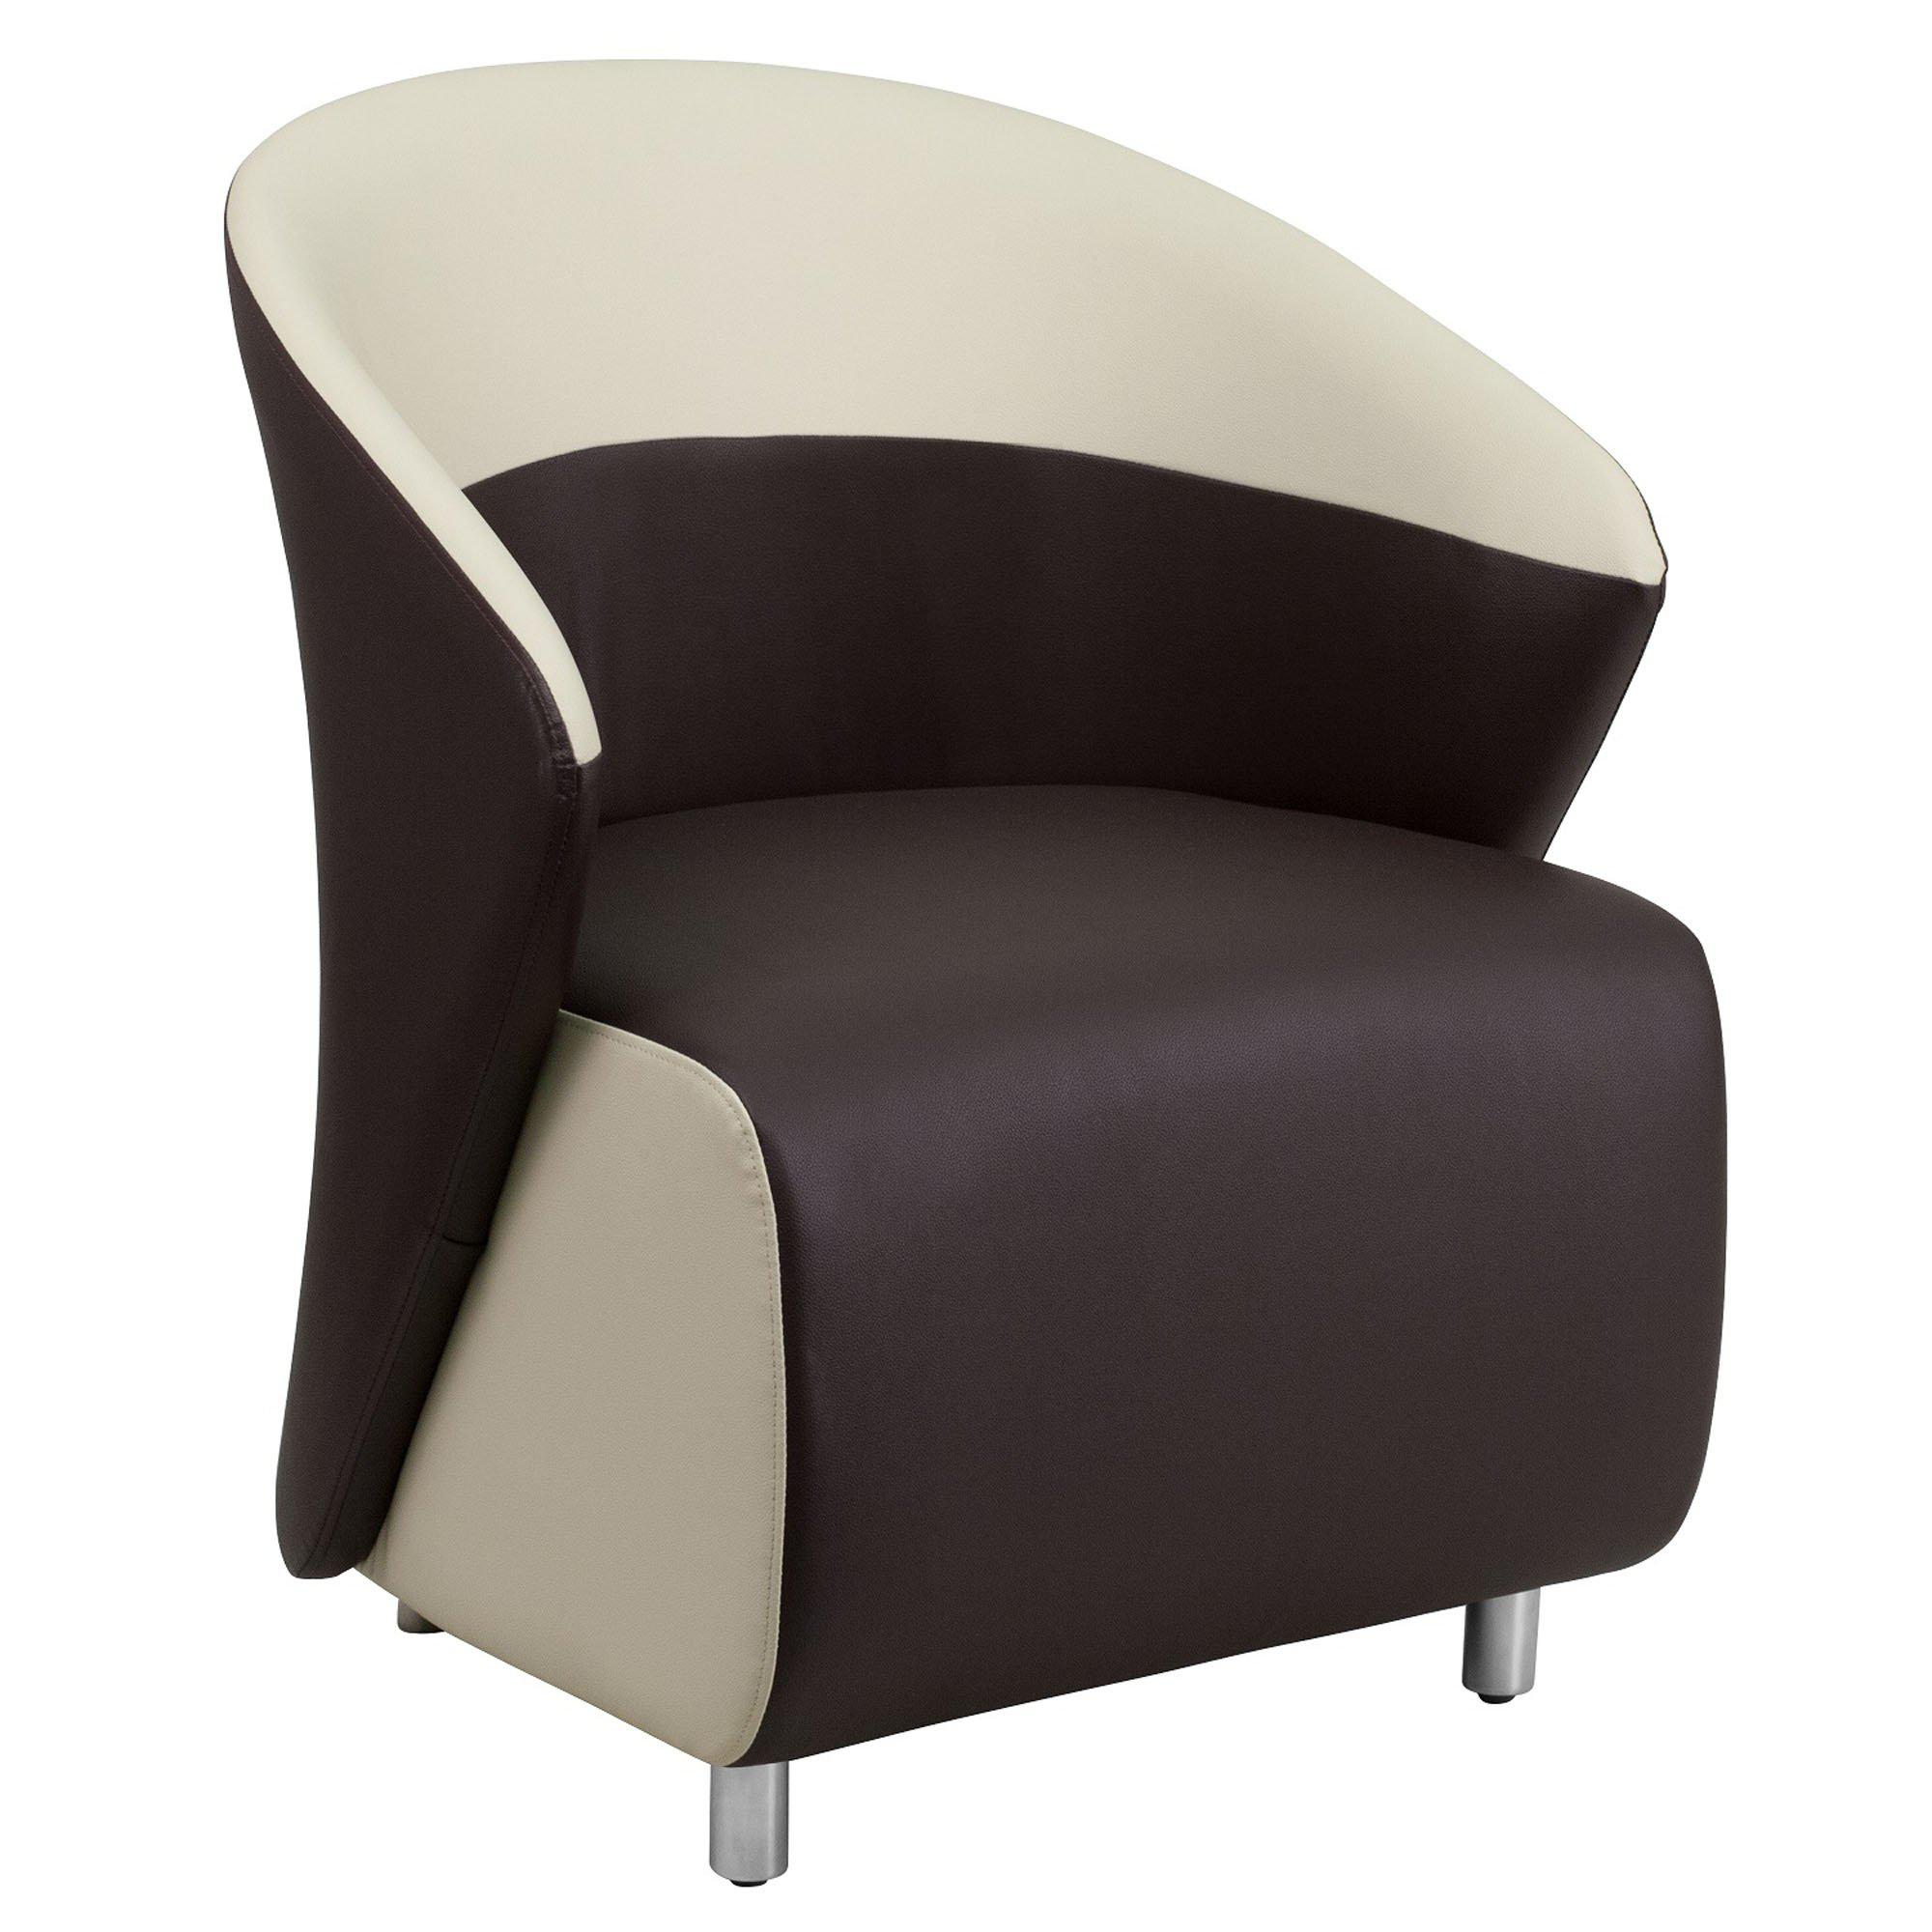 Nextgen Curved Barrel Back Lounge Chair, Dark Brown LeatherSoft Upholstery with Beige Detailing